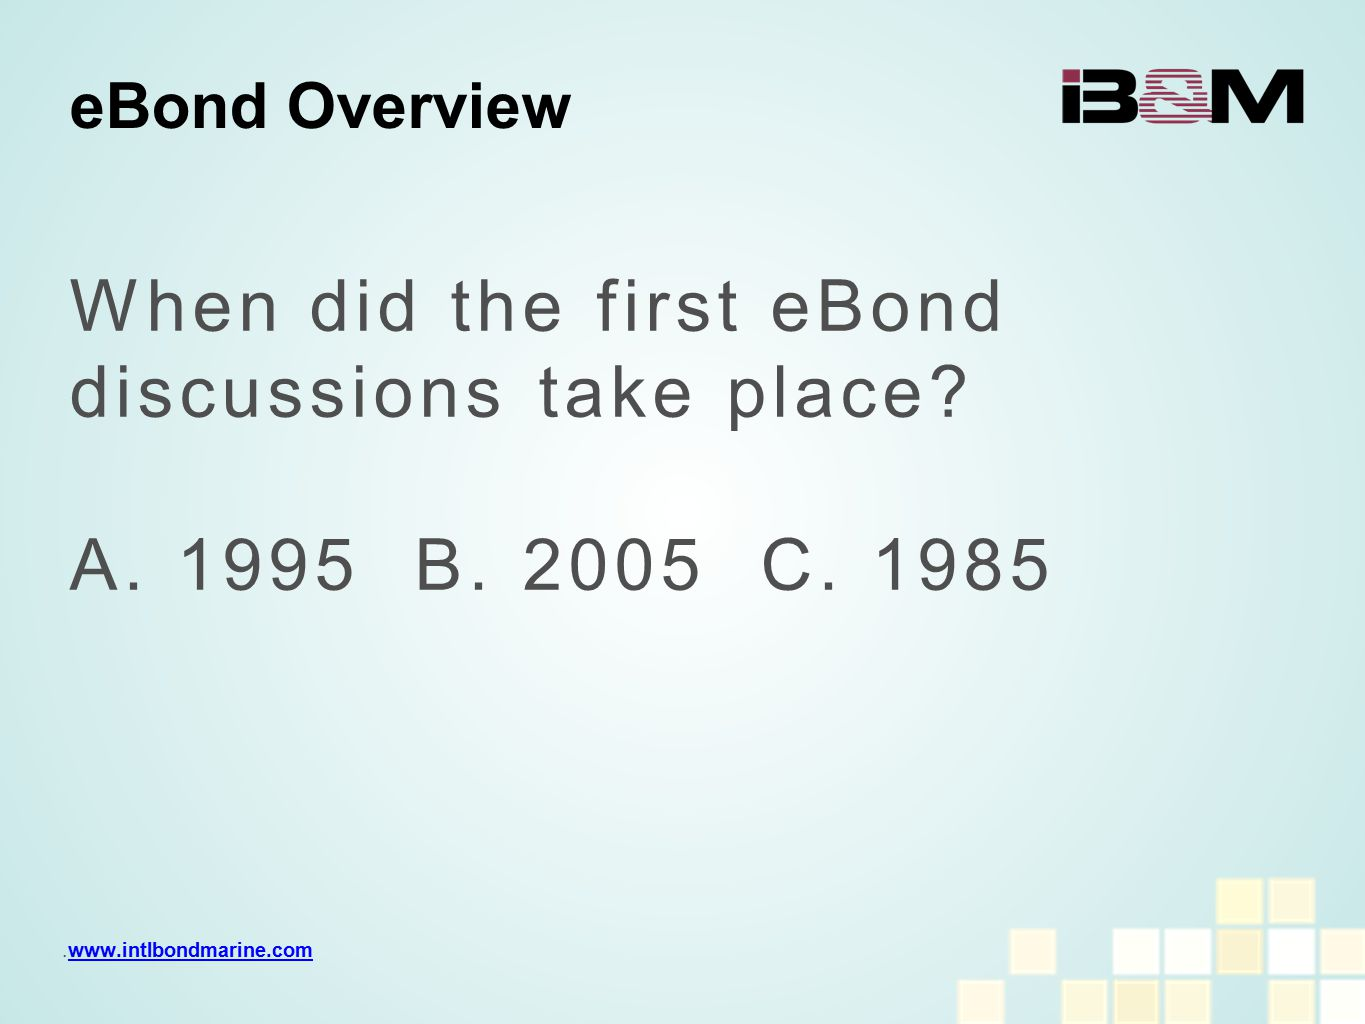 When did the first eBond discussions take place? A. 1995 B. 2005 C. 1985 eBond Overview.www.intlbondmarine.comwww.intlbondmarine.com